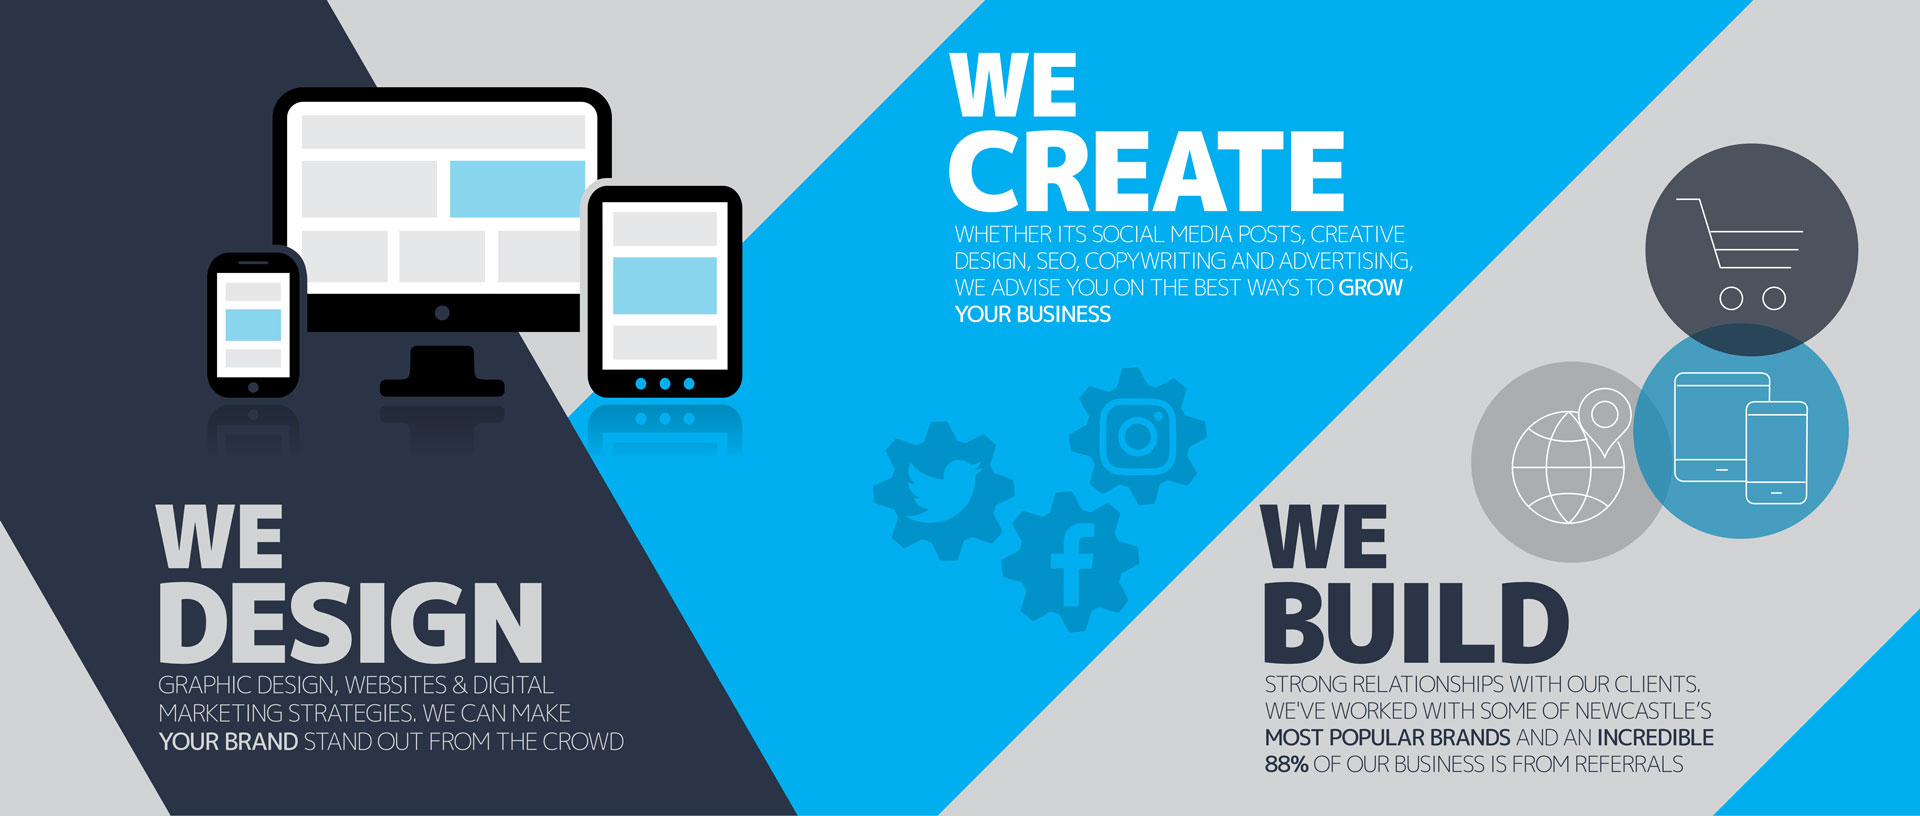 Web Seo Print Design Agency Octopus Media Newcastle